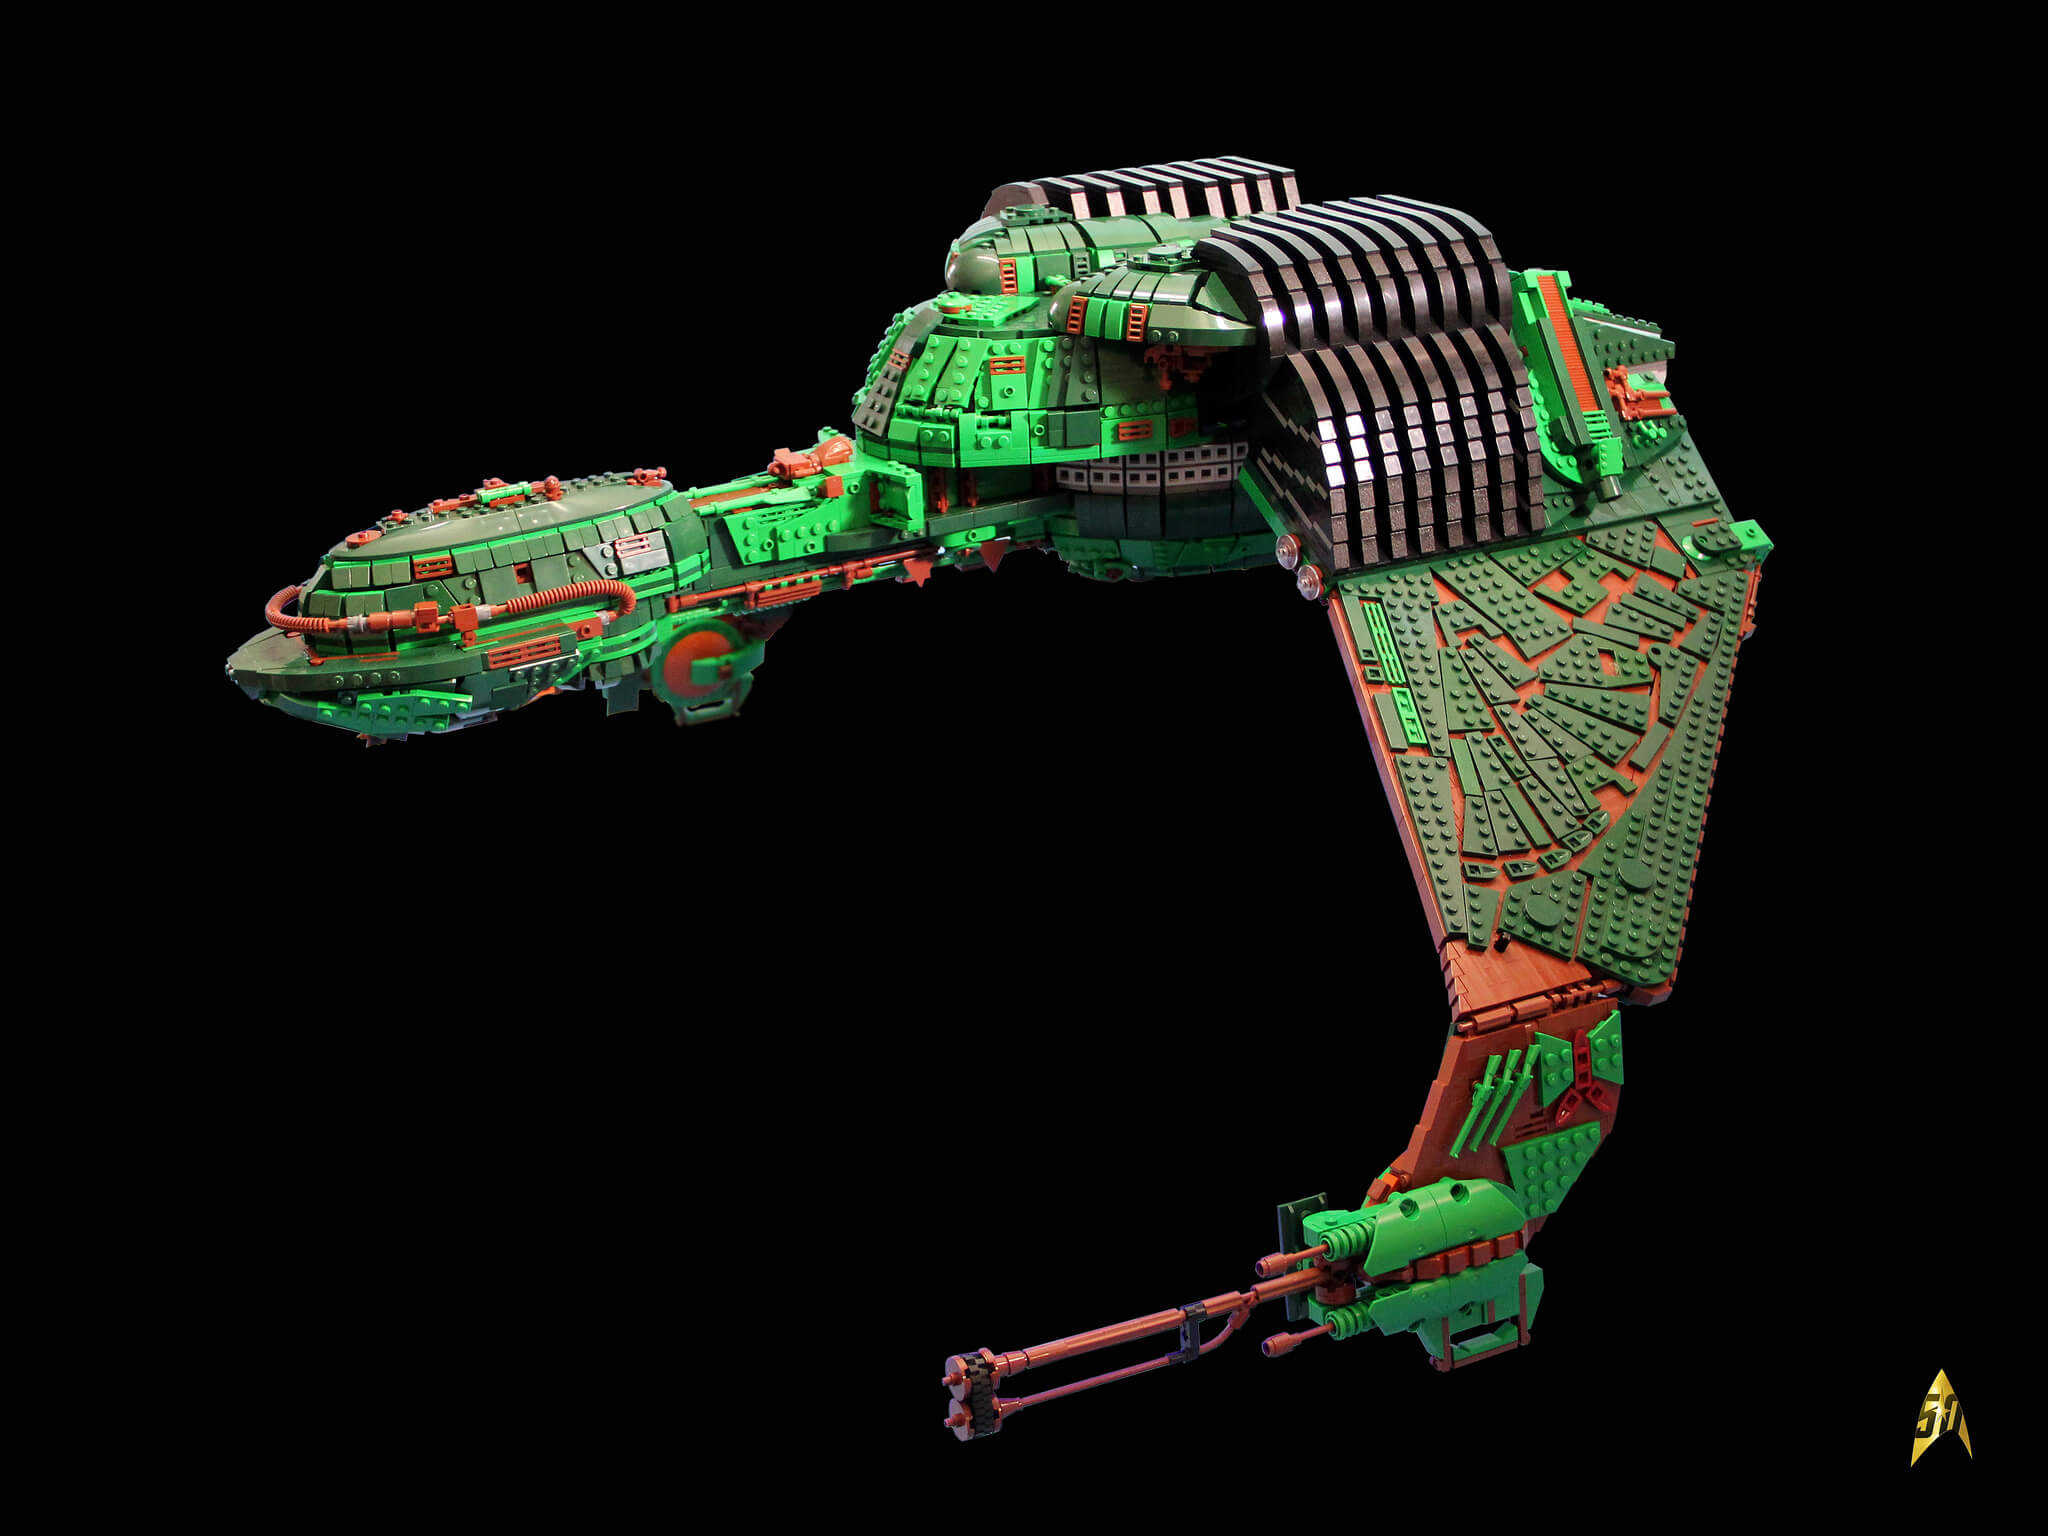 lego star trek bird of prey 6 (1)